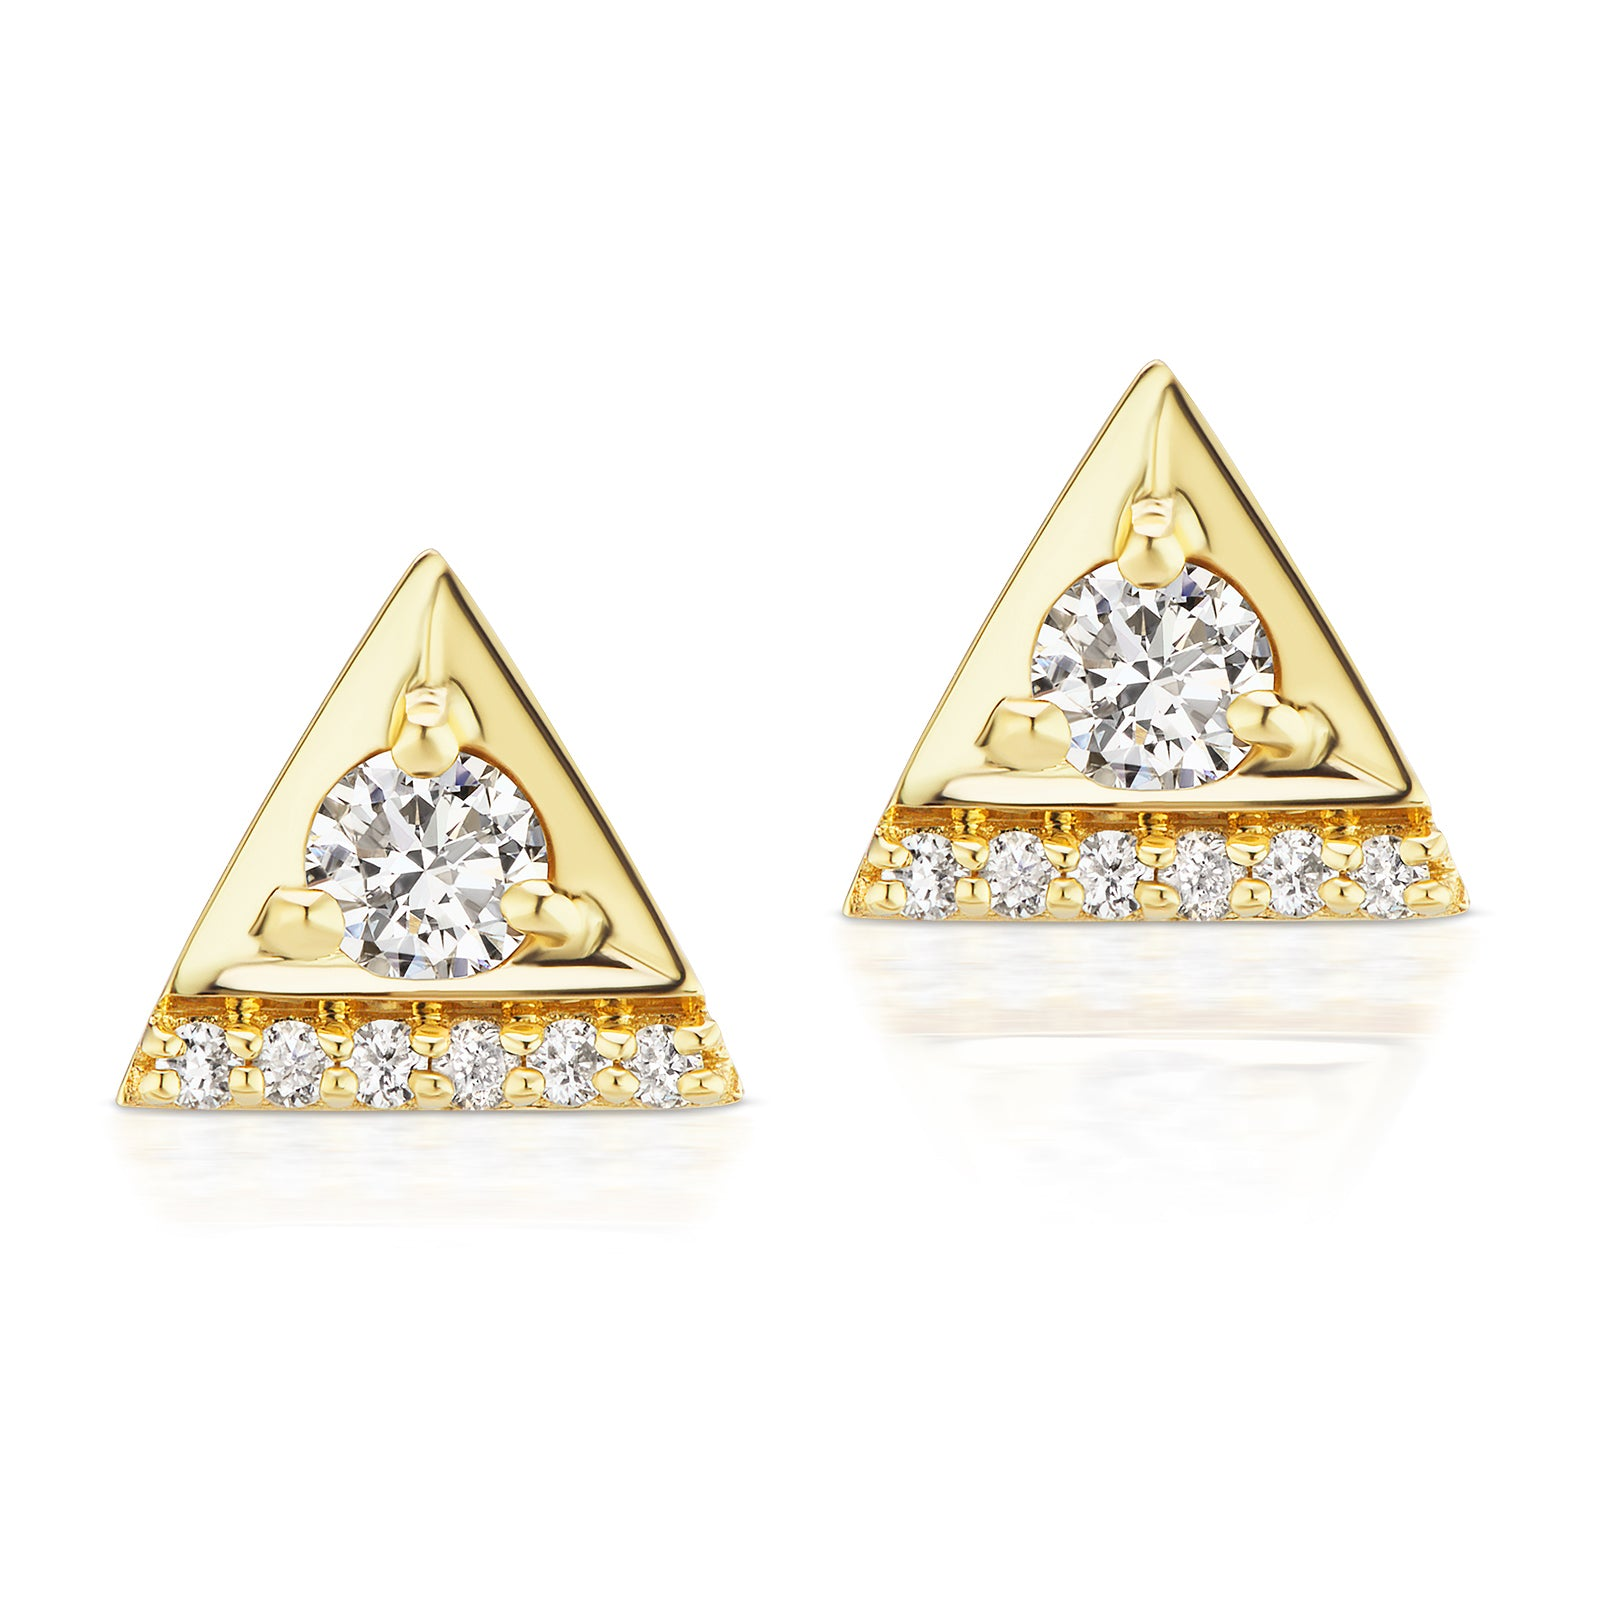 Jane Taylor Cirque Triangle Stud Earrings with Diamonds Yellow Gold